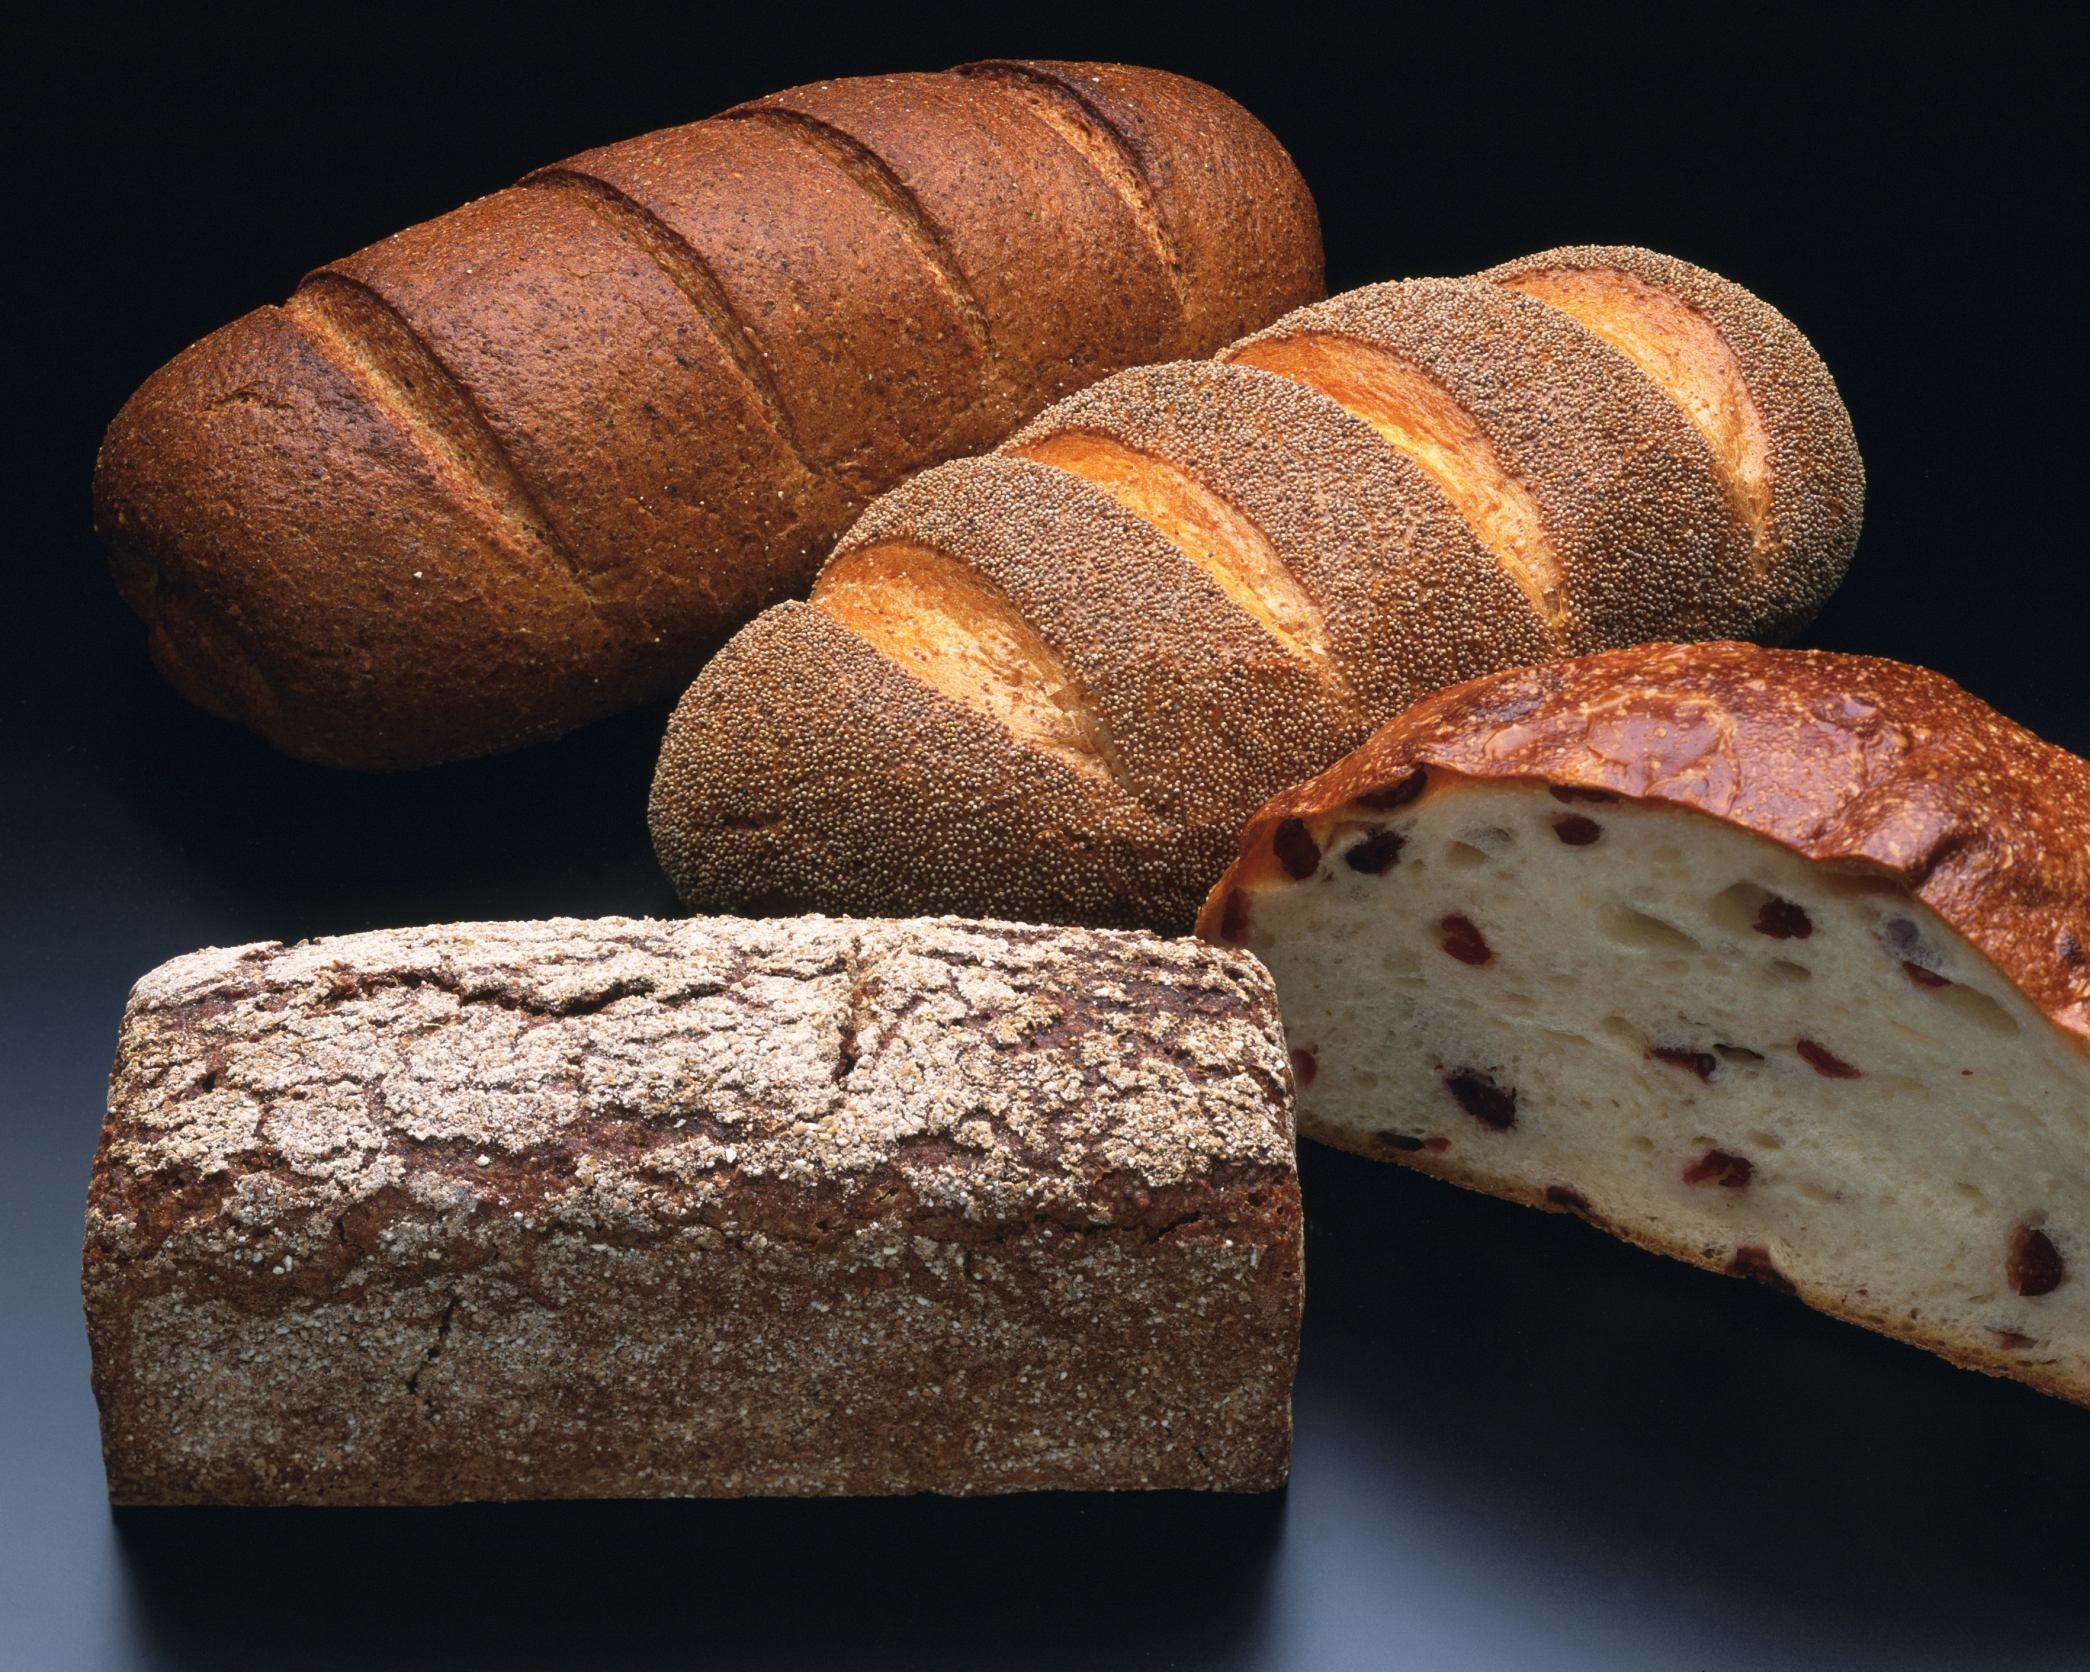 recipe: brown bread advantages and disadvantages [37]